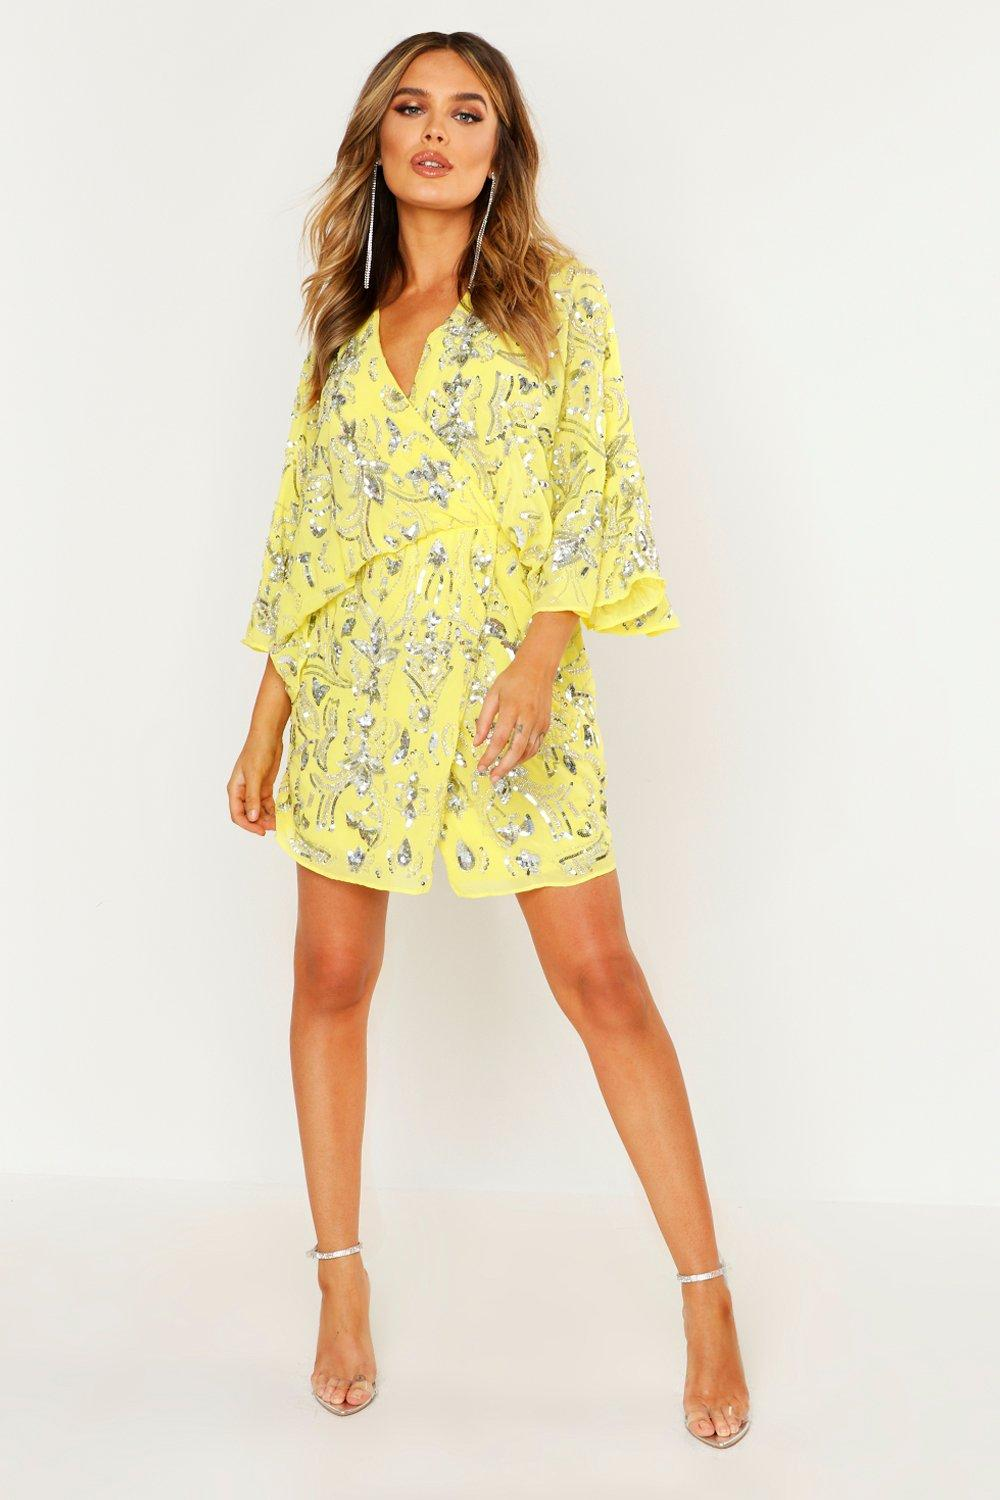 Buy Womens Premium Hand Embellished Kimono Sleeve Dress - yellow - 6, Yellow at £53.00 from Boohoo